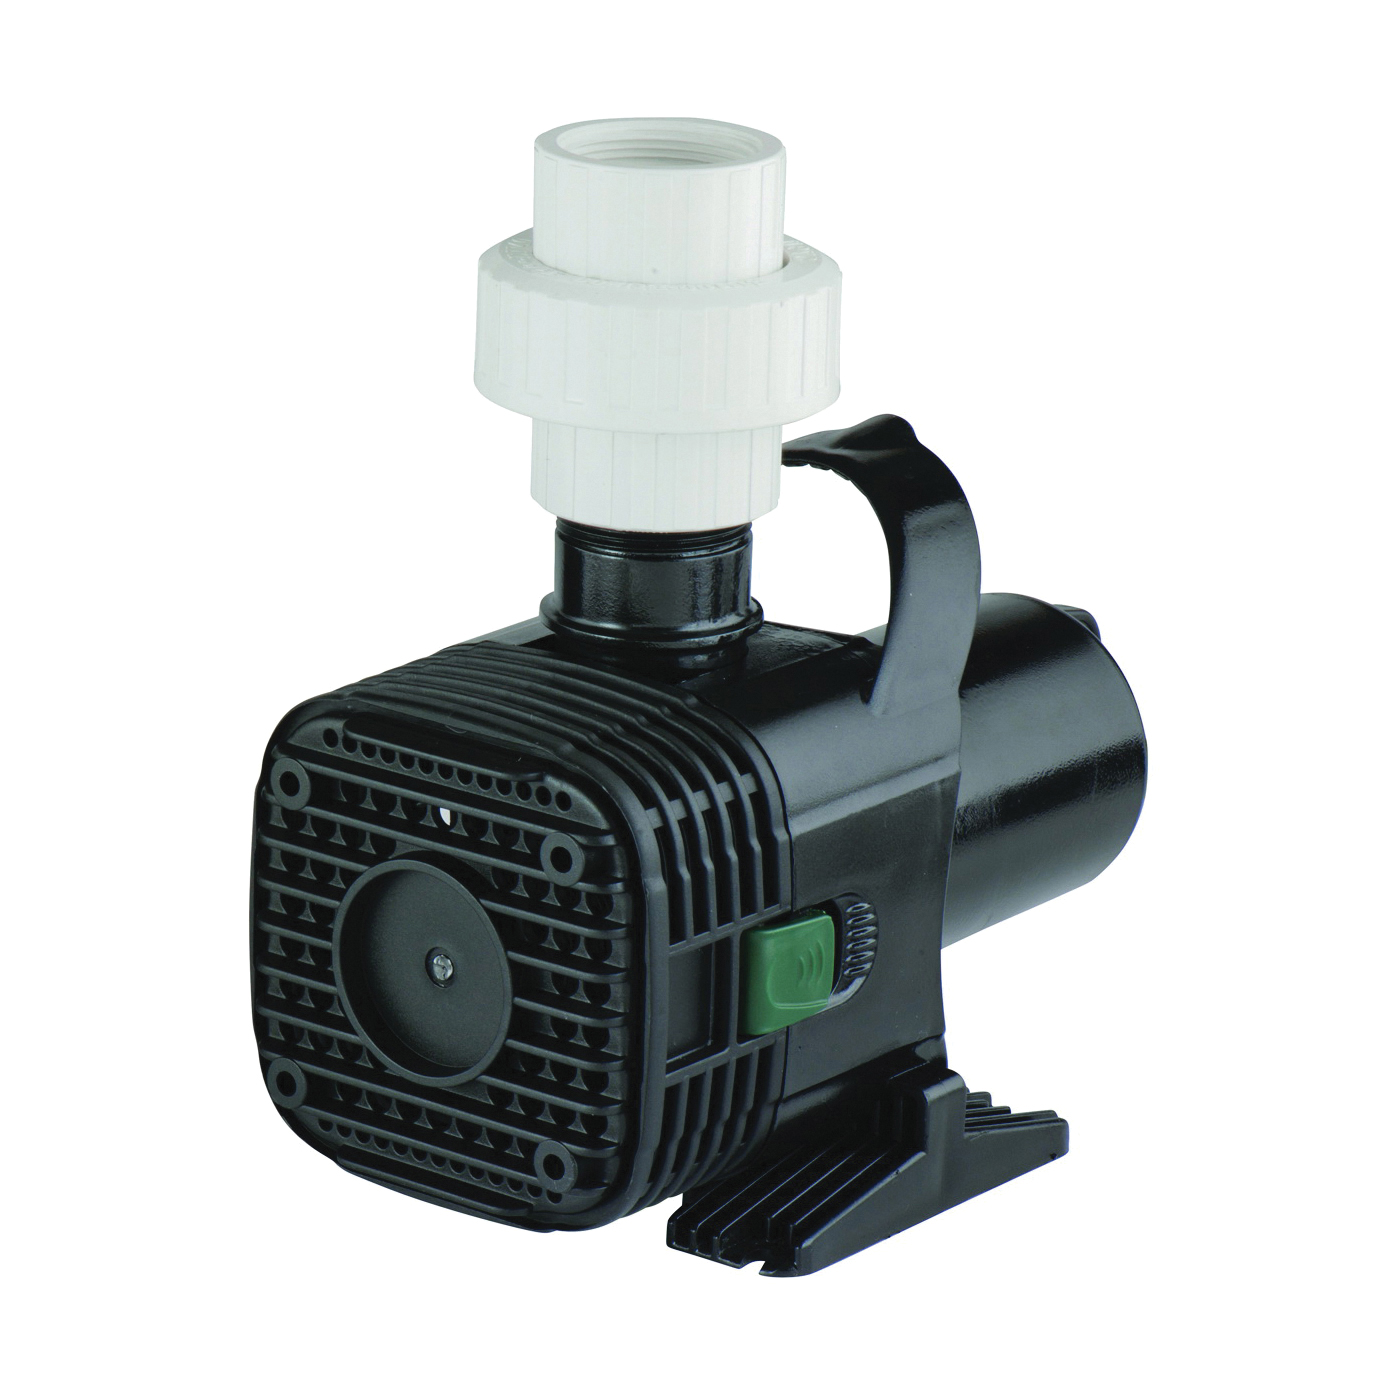 Picture of Little Giant 566724 Wet Rotor Pump, 1.3 A, 115 V, 1/2 in Connection, 1295 gph, Horizontal, Vertical Mounting